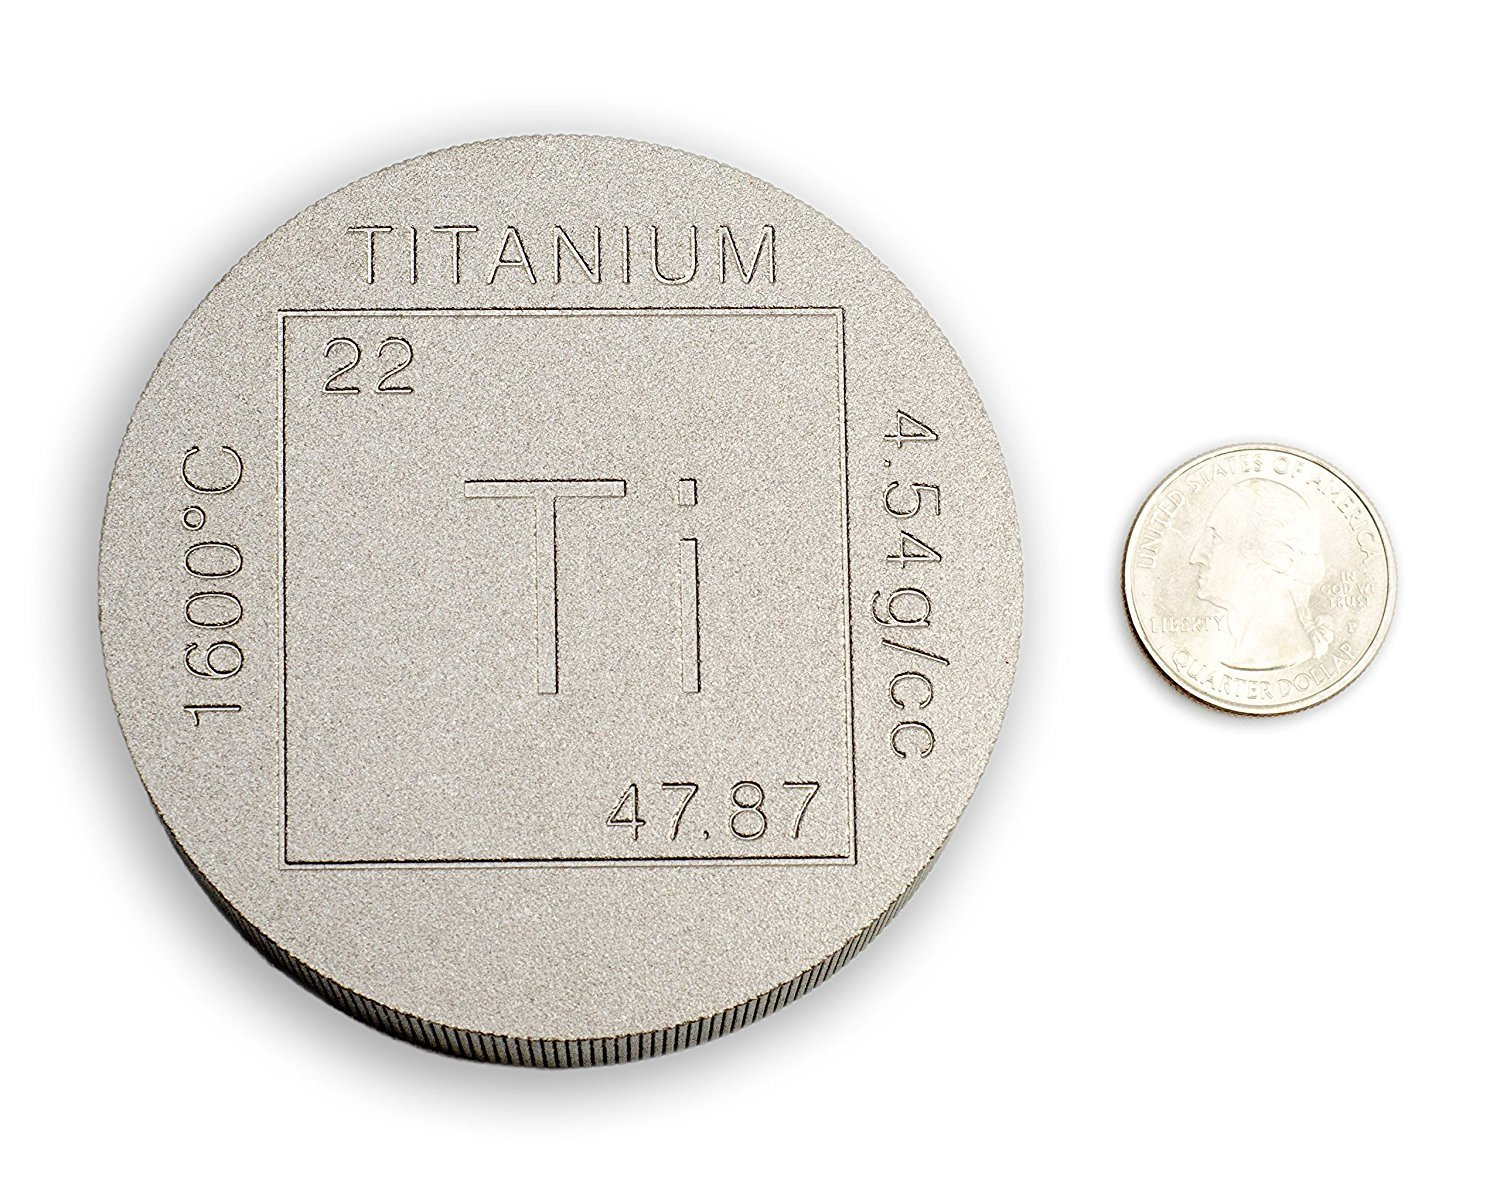 Titanium Bullion Paperweight - 1lb Round 999 Pure Chemistry Element Design by Metallum Gifts